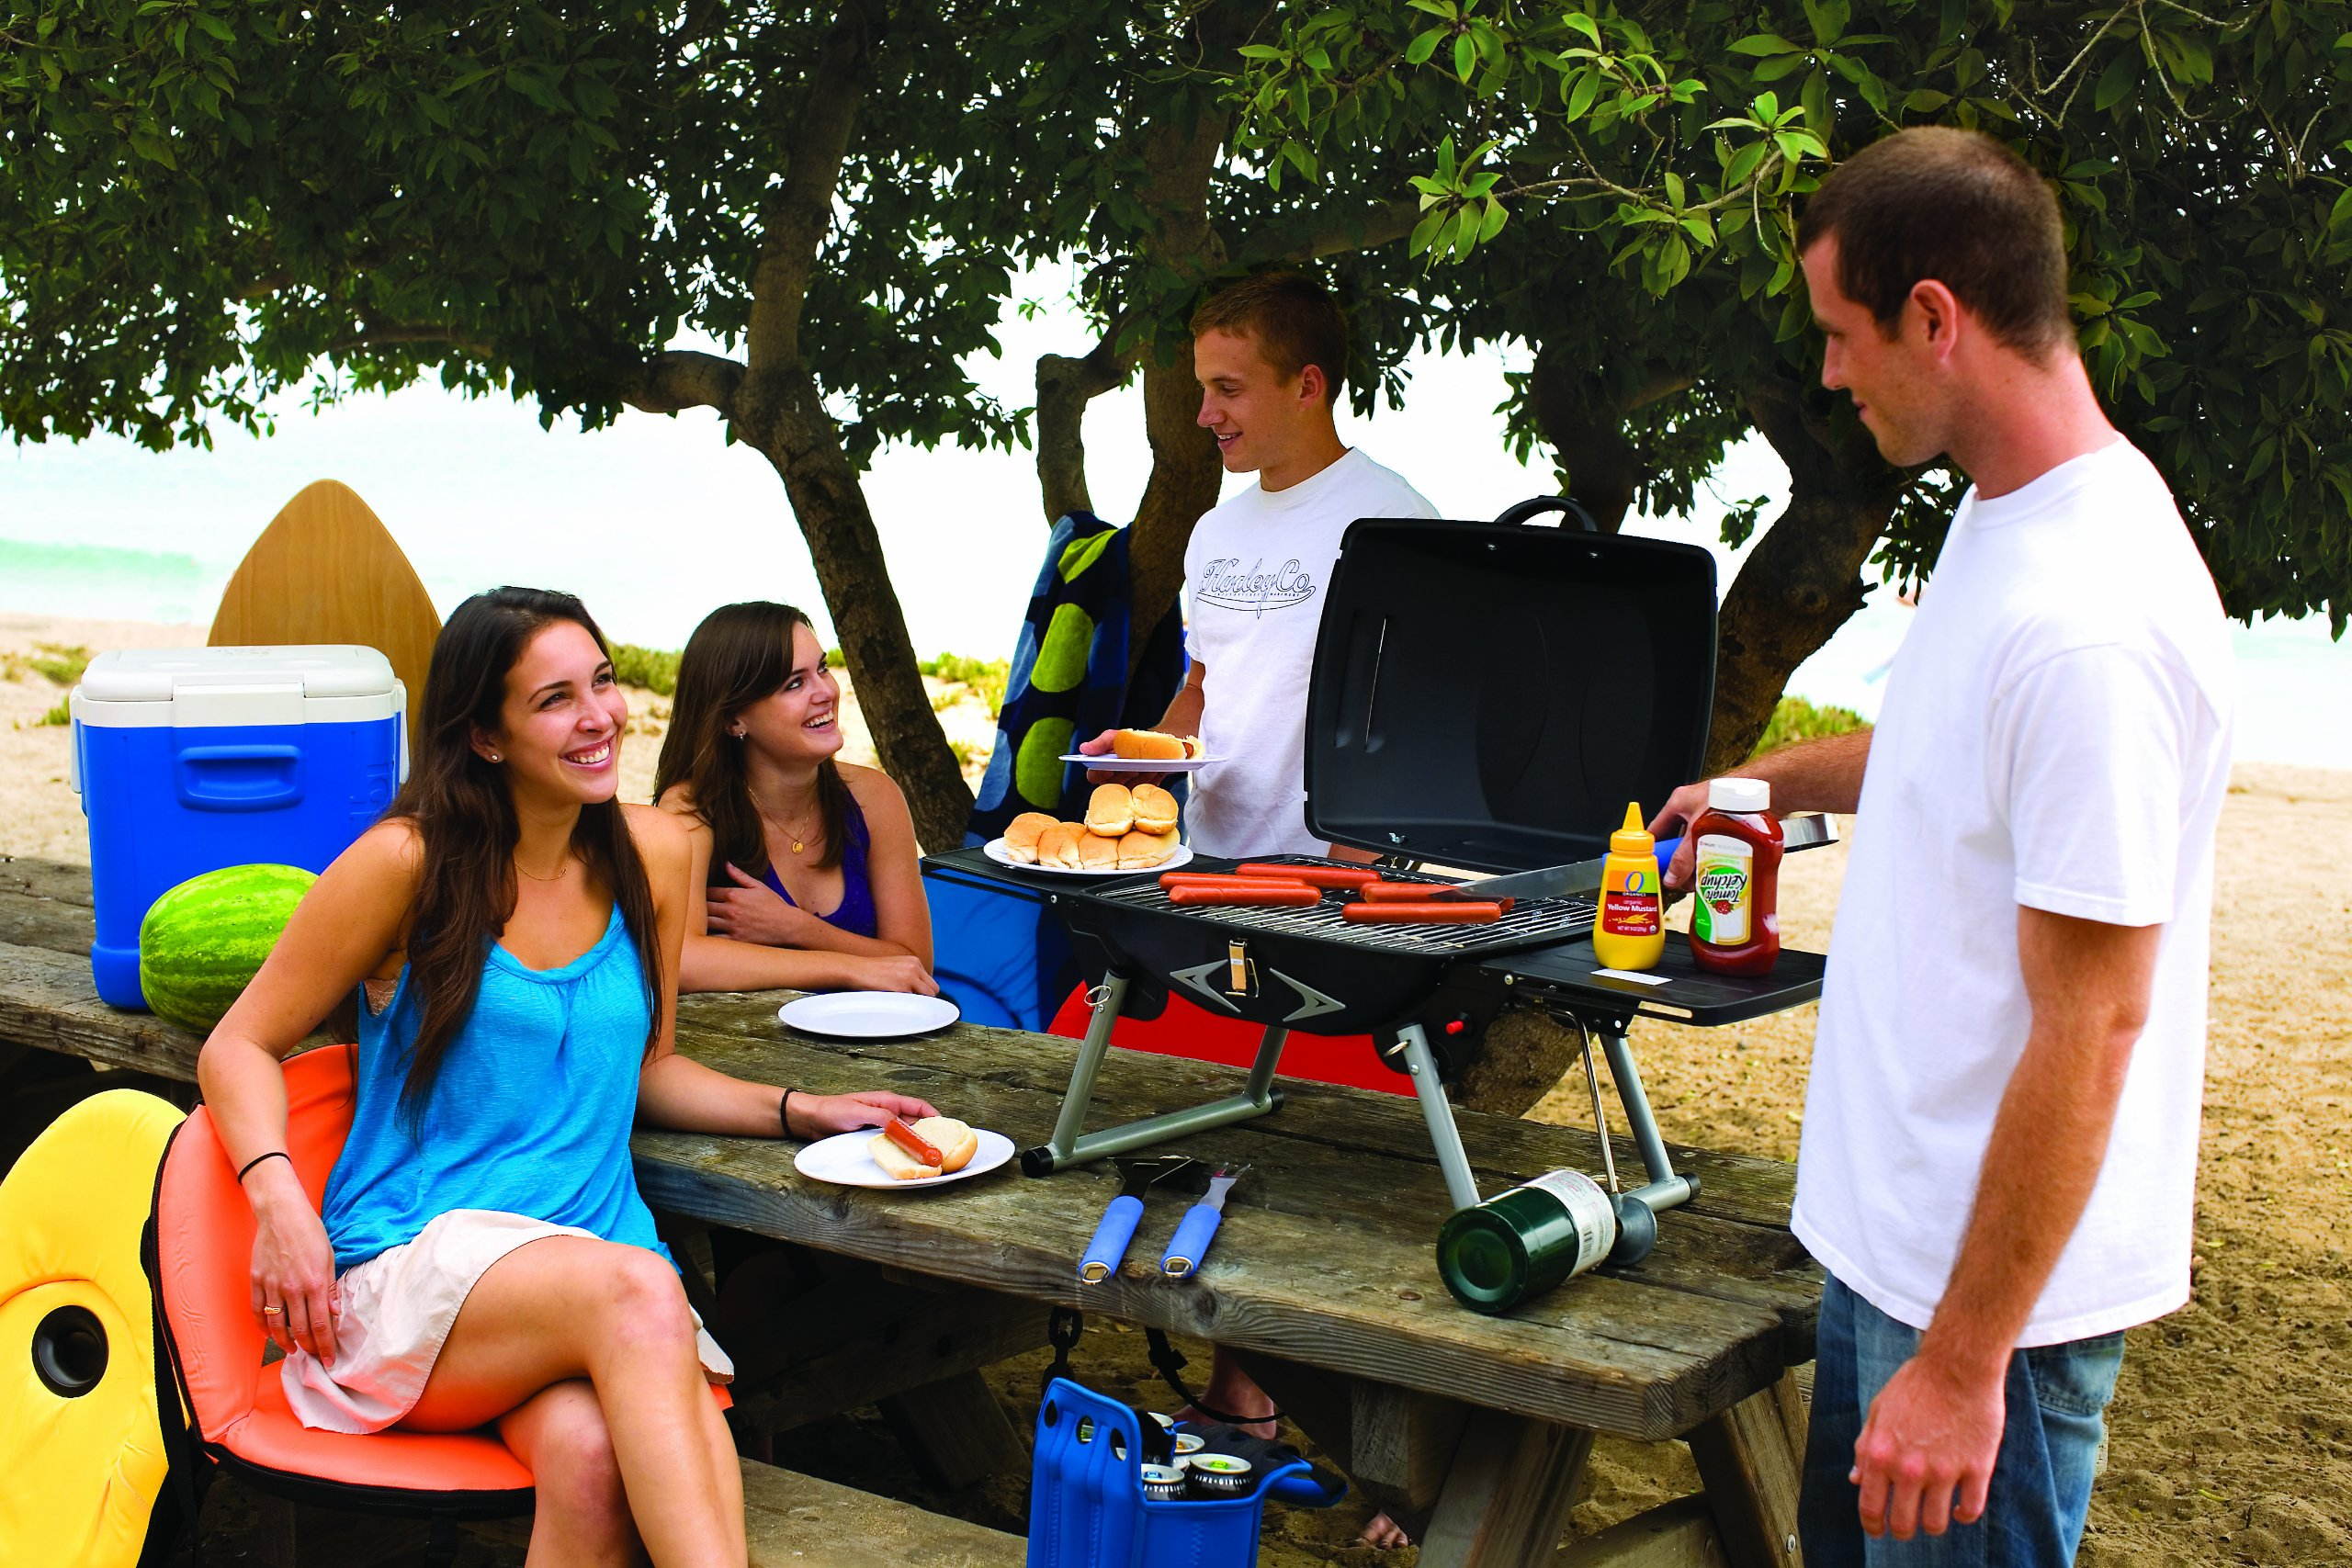 Picnic Time Portagrillo Portable Propane BBQ Grill by ONIVA - a Picnic Time brand (Image #6)